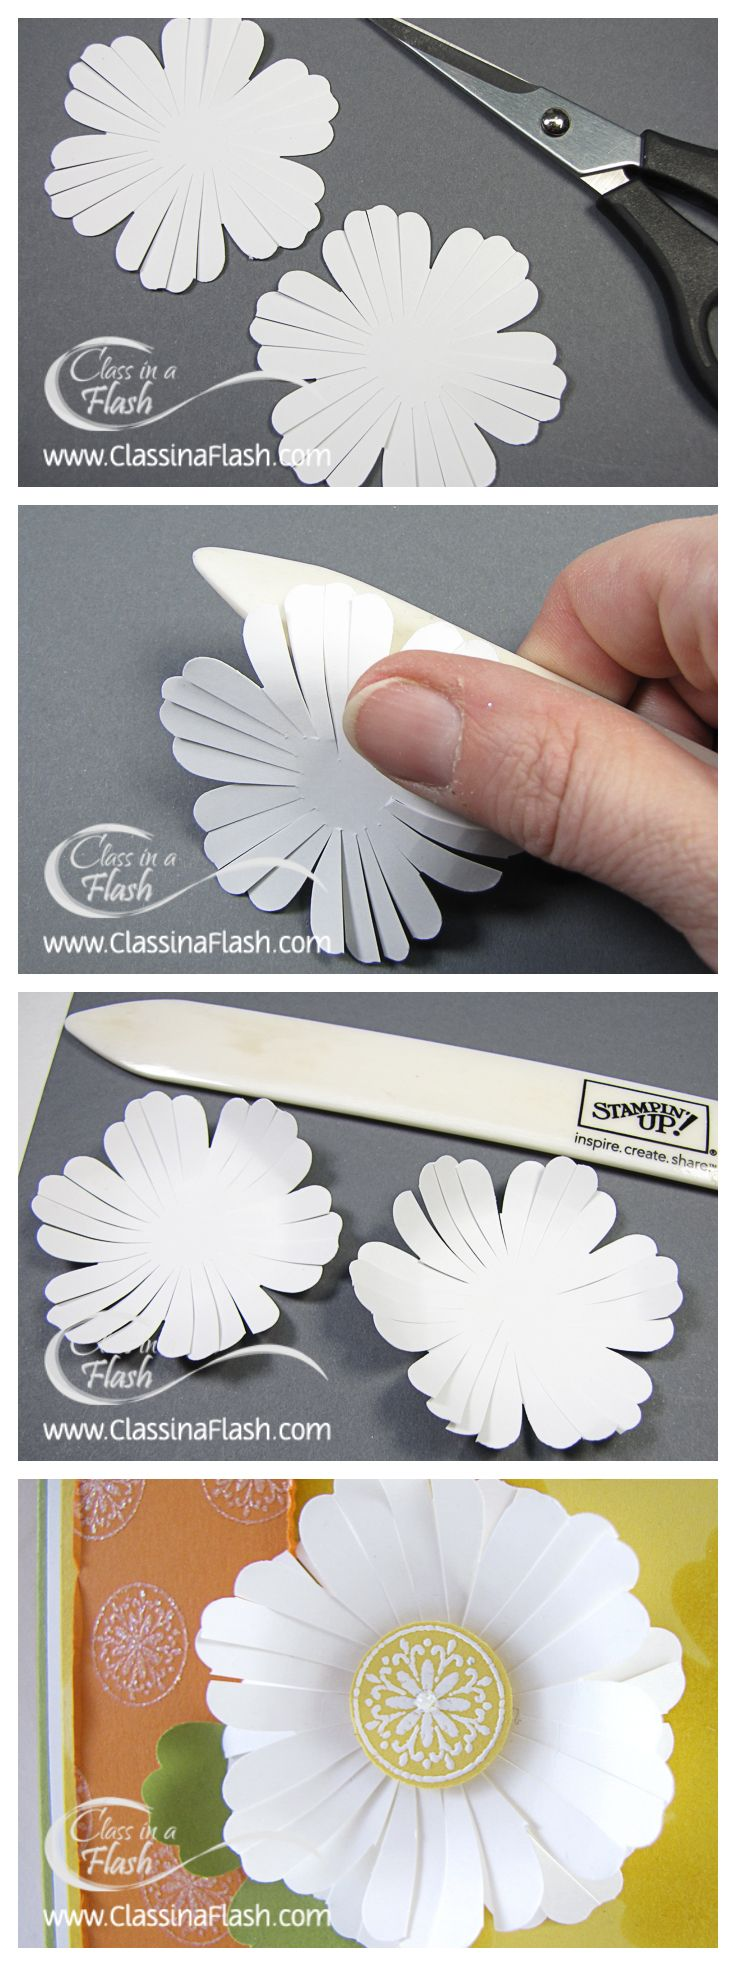 Using a flower punch, cut each bump to look like a petal and bend with your bone folder for an alternative look. (Shade the centre with a light grey colour before adding a button or something similar to look like the centre of the flower... the grey will look like shading underneath it. Mixed Bunch Daisy Tutorial | CraftyPerson Production Store